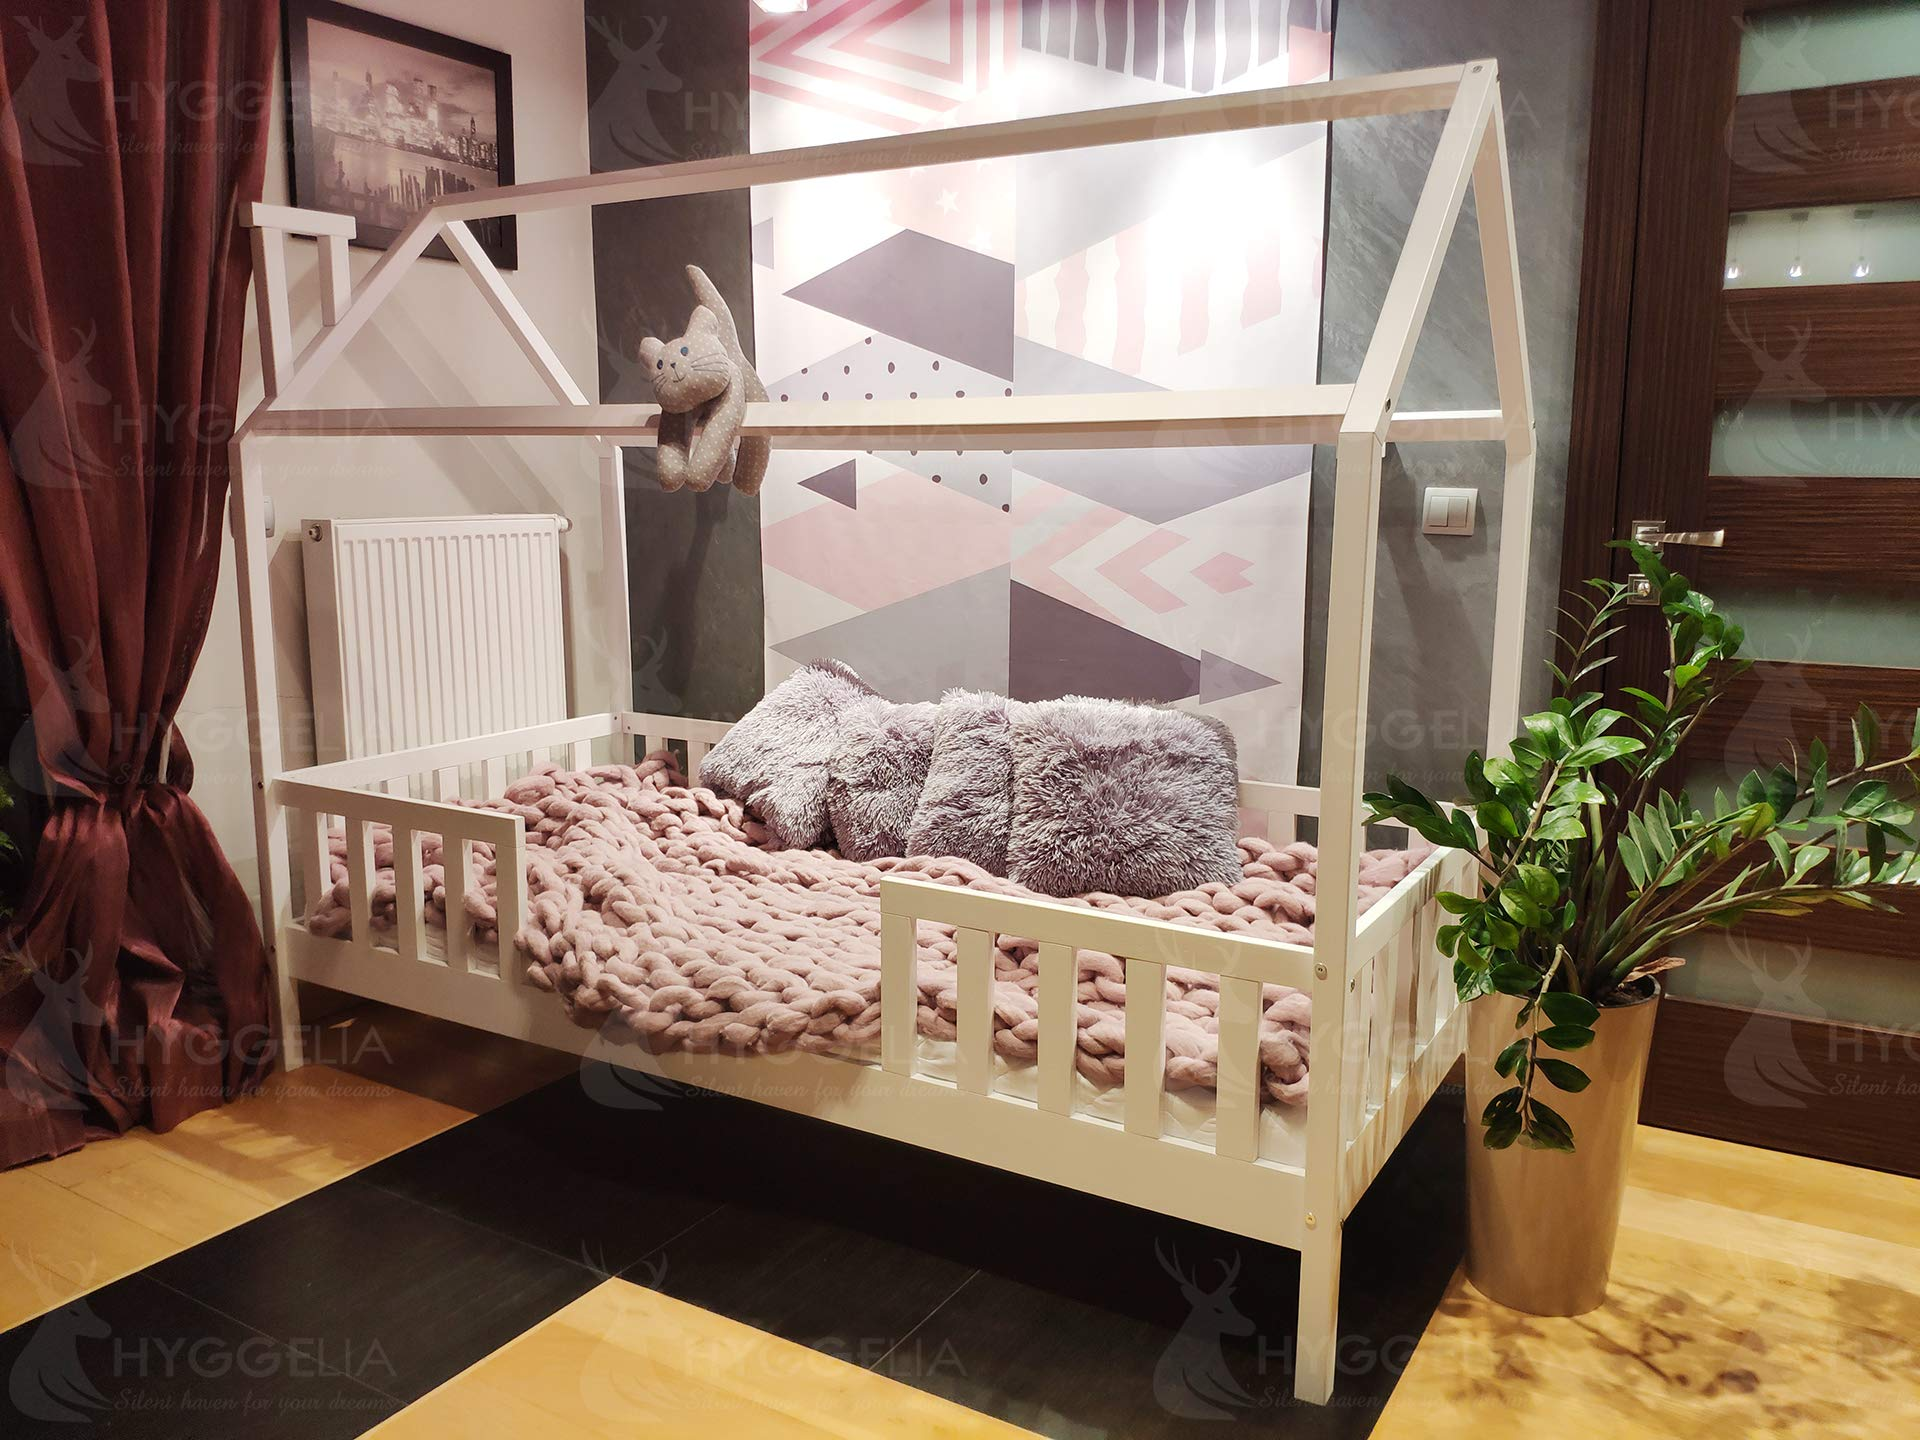 House BED with barriers Chester Wooden bed for children bed for teenager Bedroom furniture cottages wooden cottage bed (193 x 203 cm (King Size)) Hyggelia Material: First class natural pine chipless wood Colour: Natural wood Permissible weight: 180kg 1